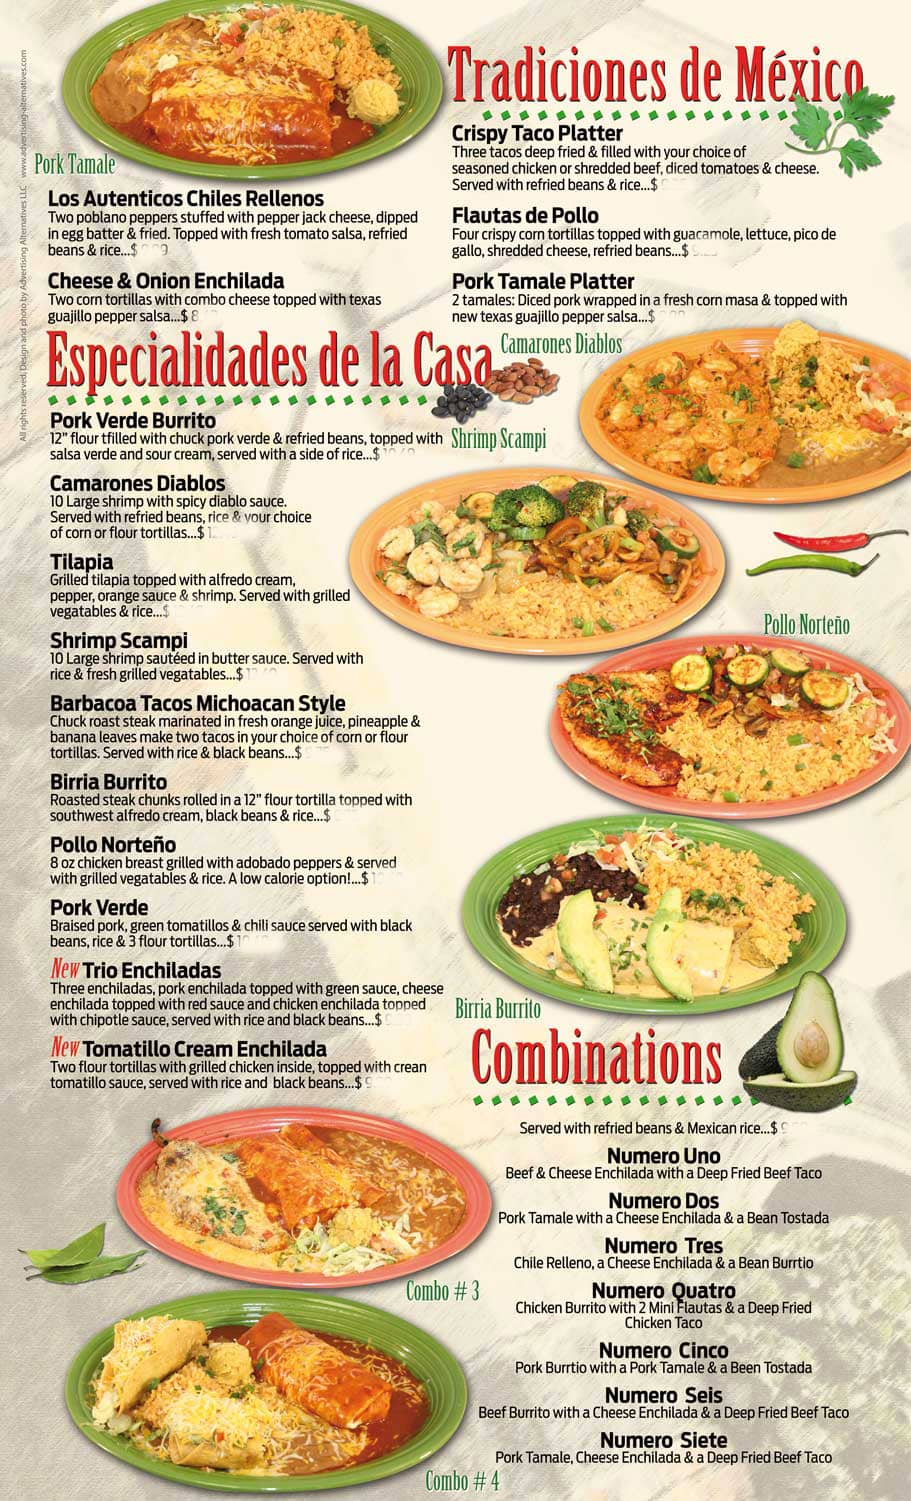 cilantros food and drink menu